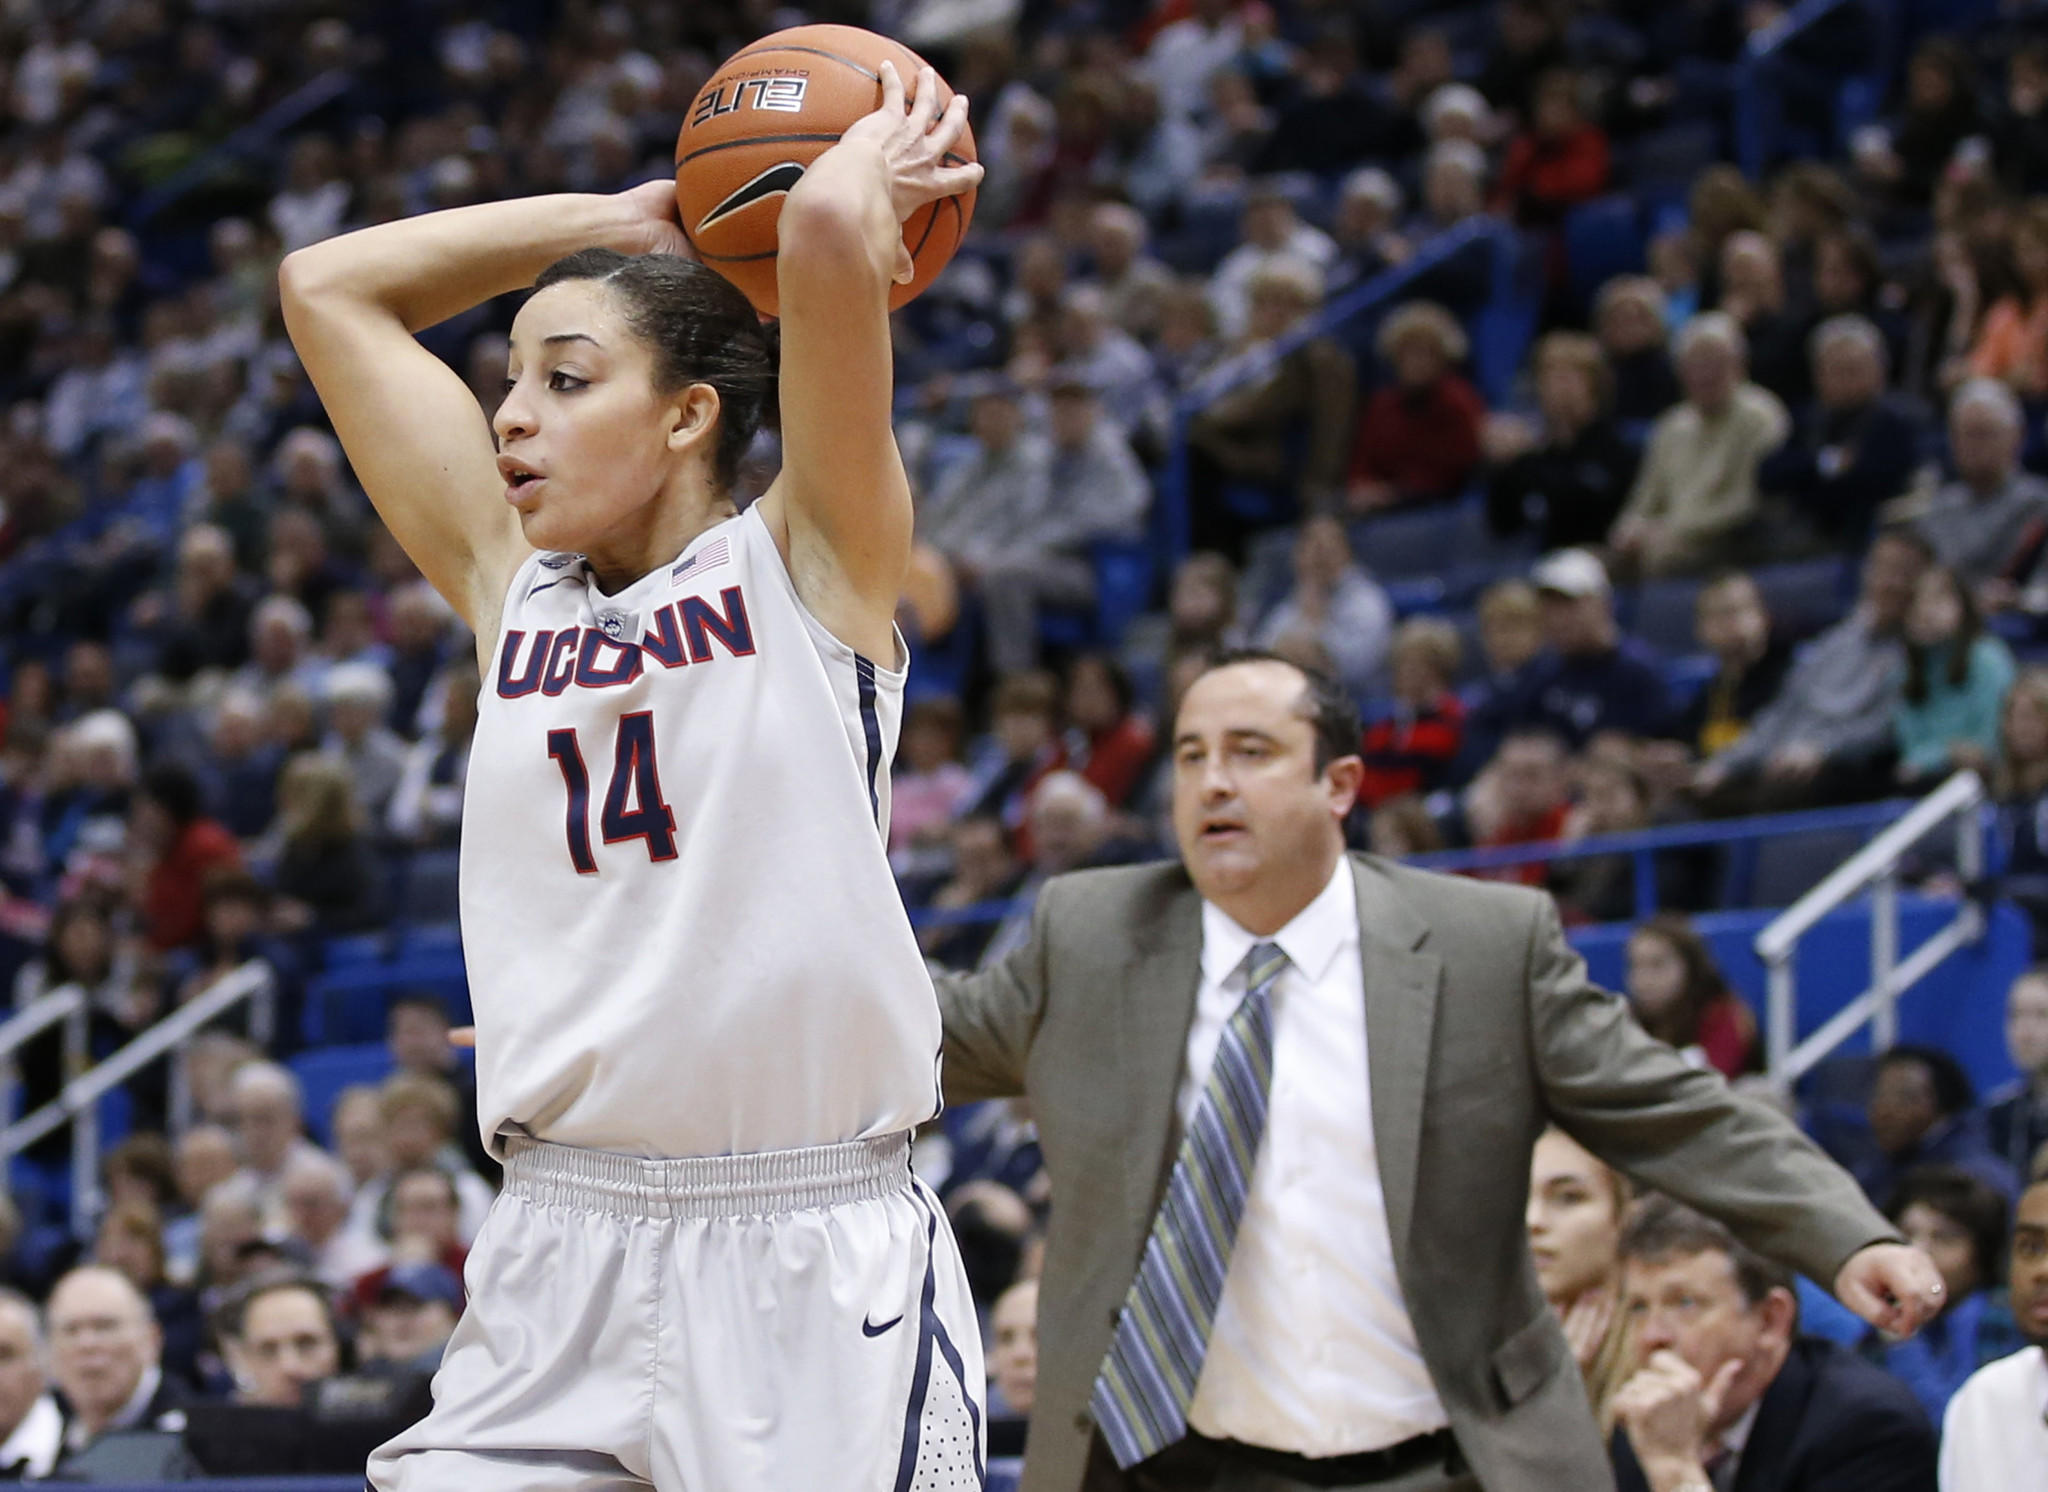 Jan 26, 2014; Hartford, CT, USA; Connecticut Huskies guard Bria Hartley (14) looks to pass the ball against the South Florida Bulls in the first half at XL Center. Mandatory Credit: David Butler II-USA TODAY Sports ORG XMIT: USATSI-160398